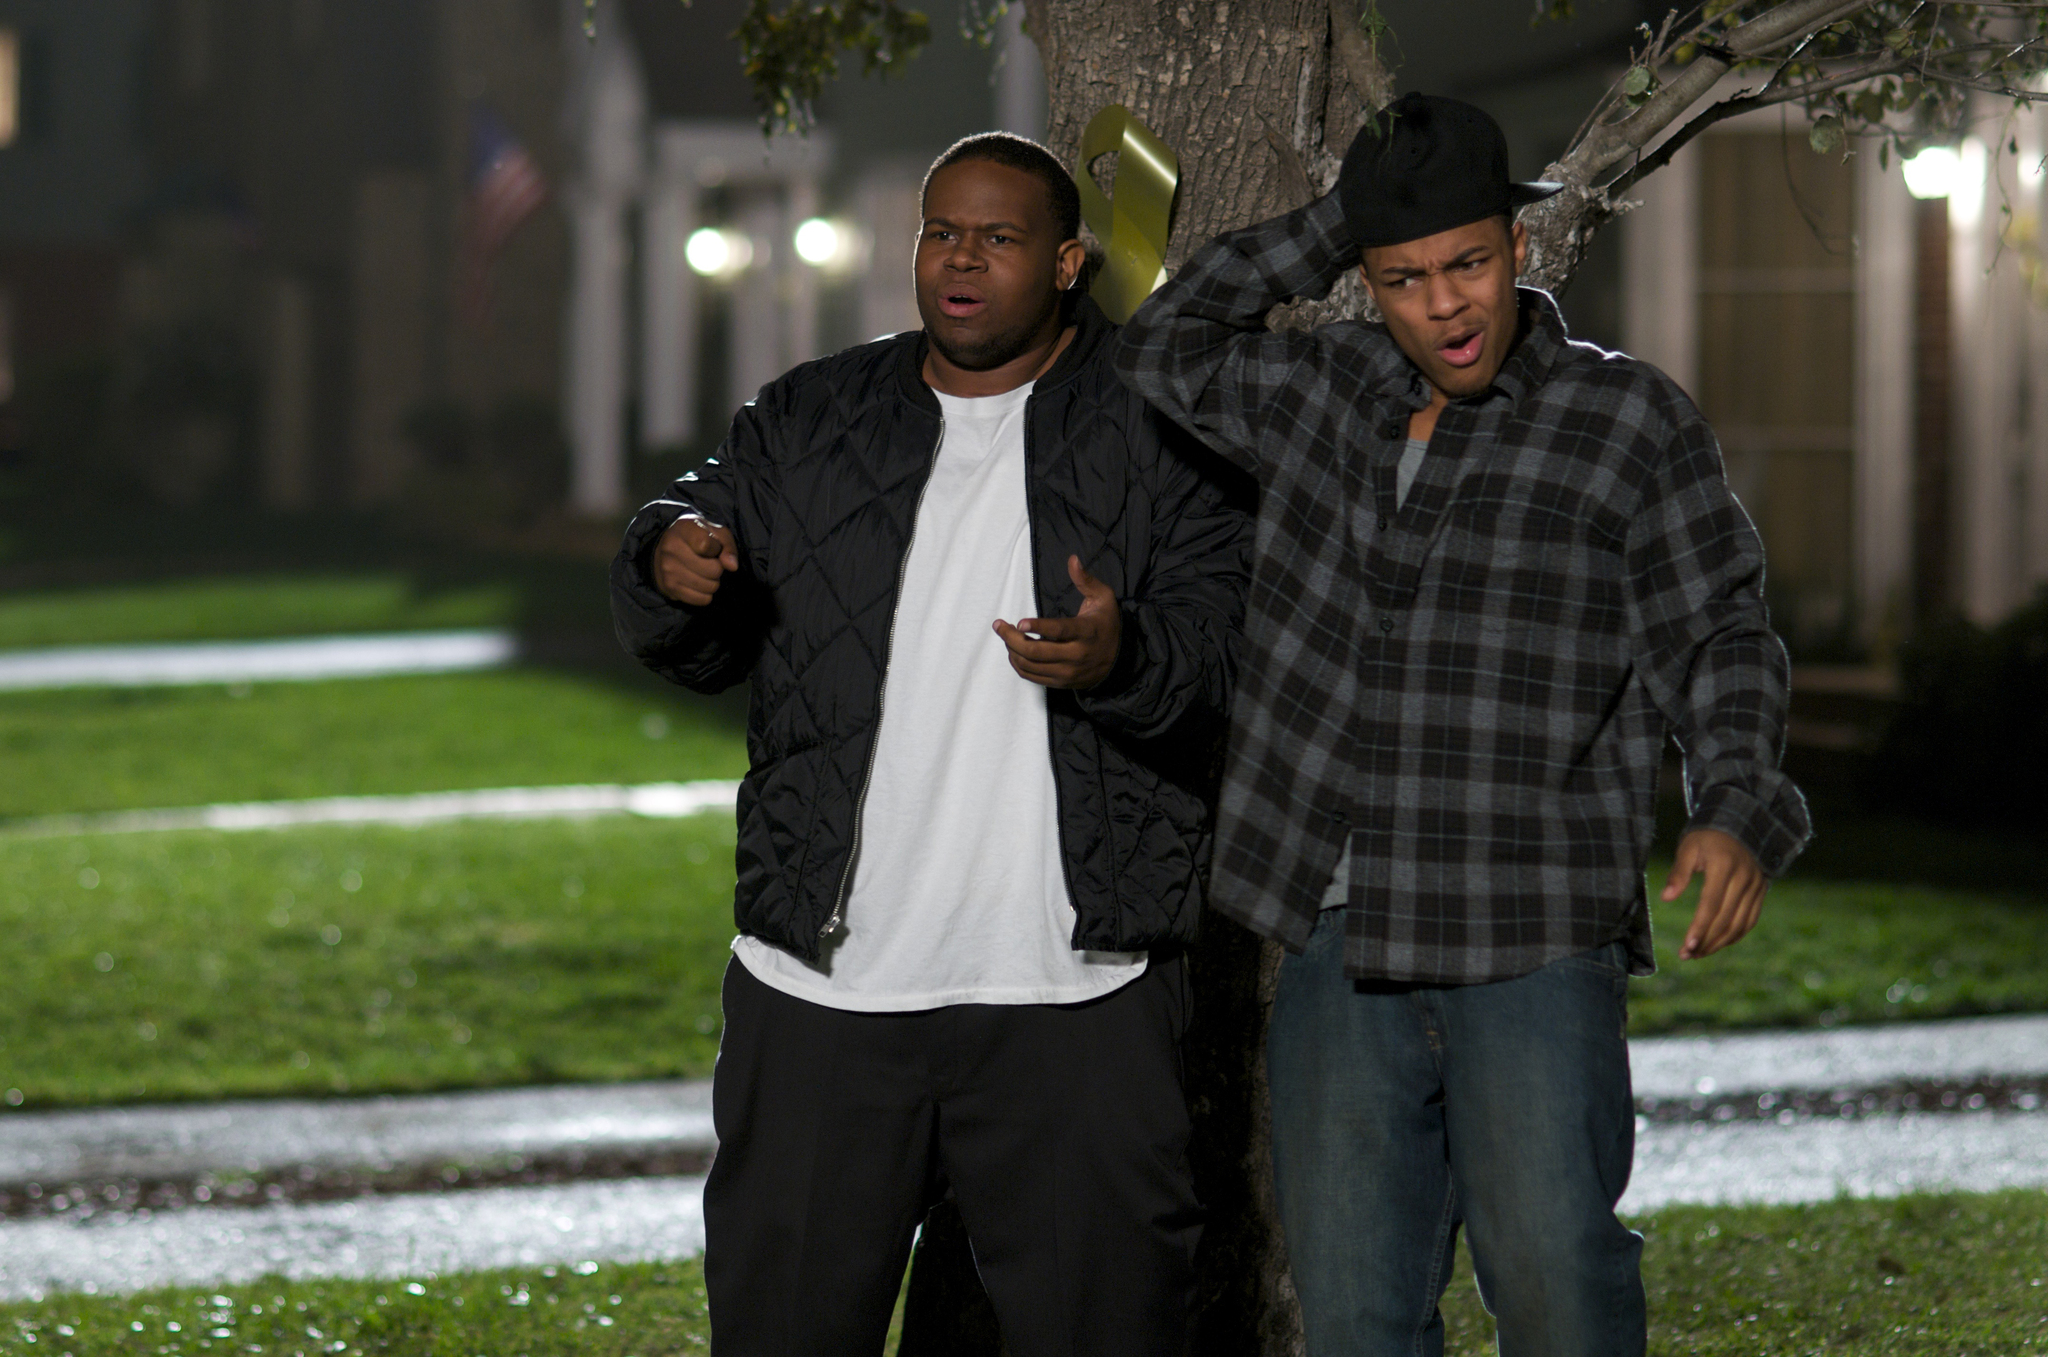 Shad Moss and Jermaine Williams in The Family Tree (2011)